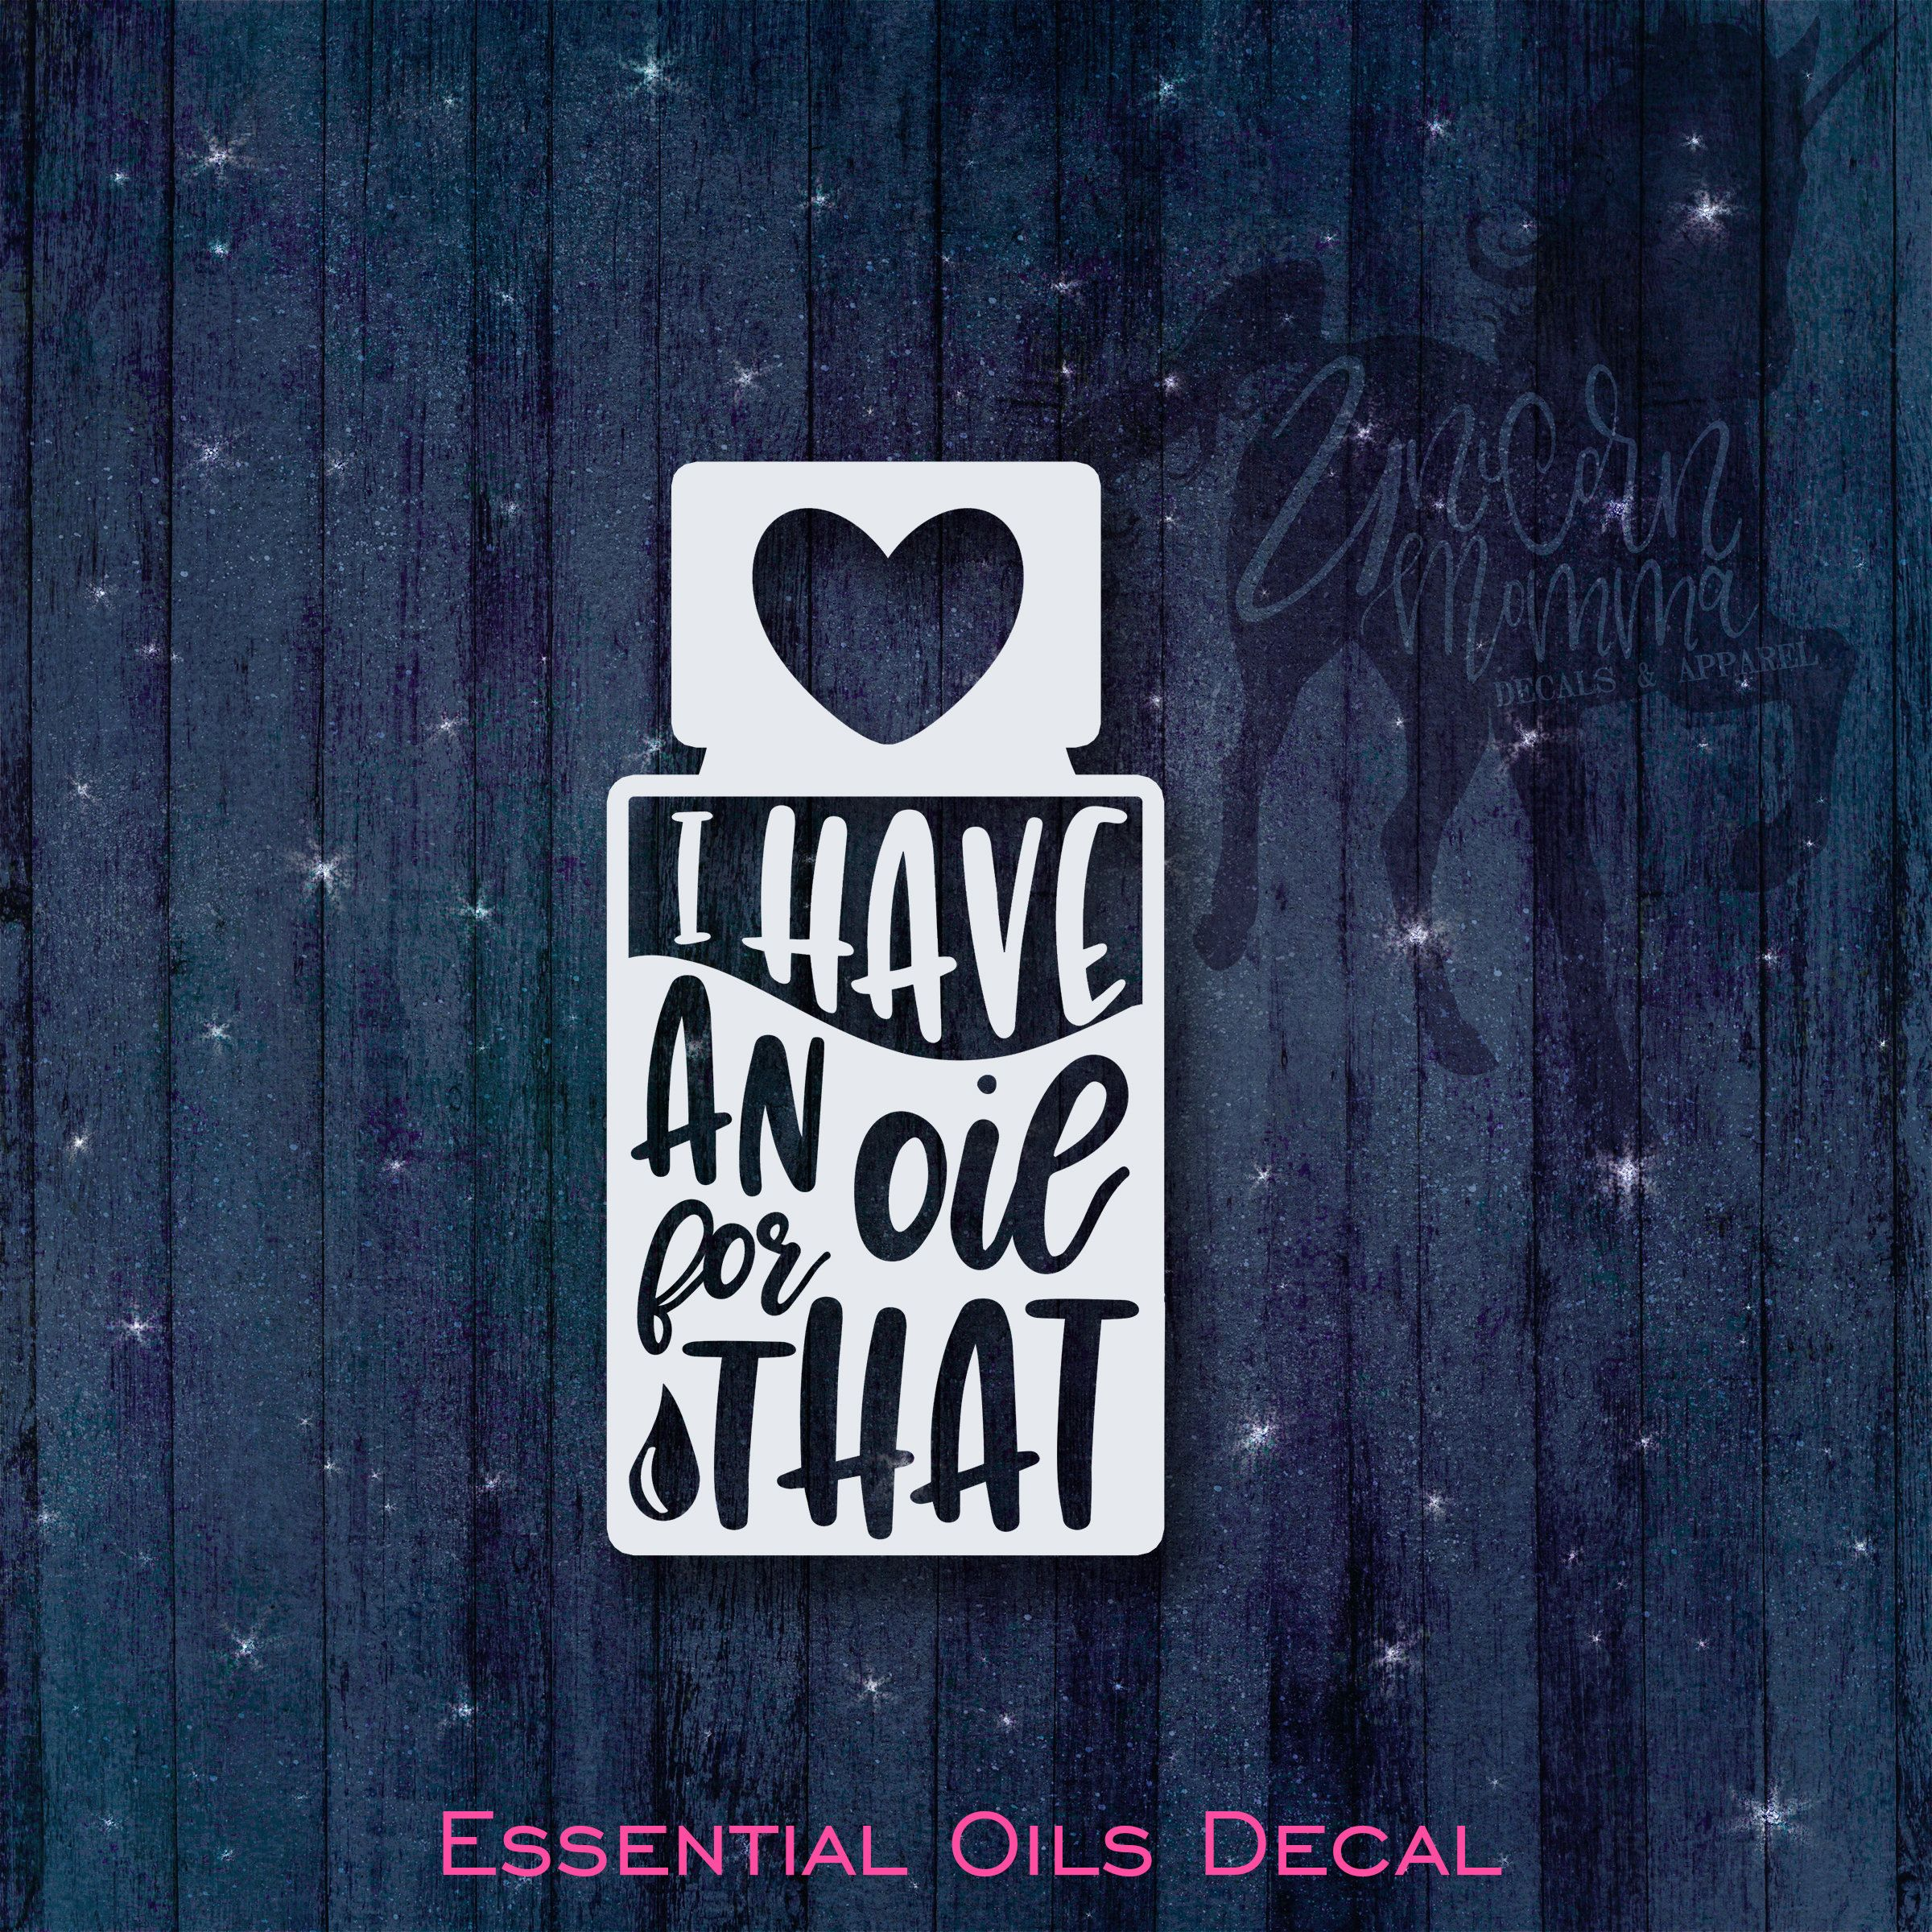 I Have An Oil For That Essential Oils Vinyl Car Decal Car Etsy Notebook Decal Car Decals Vinyl Oils [ 2400 x 2400 Pixel ]